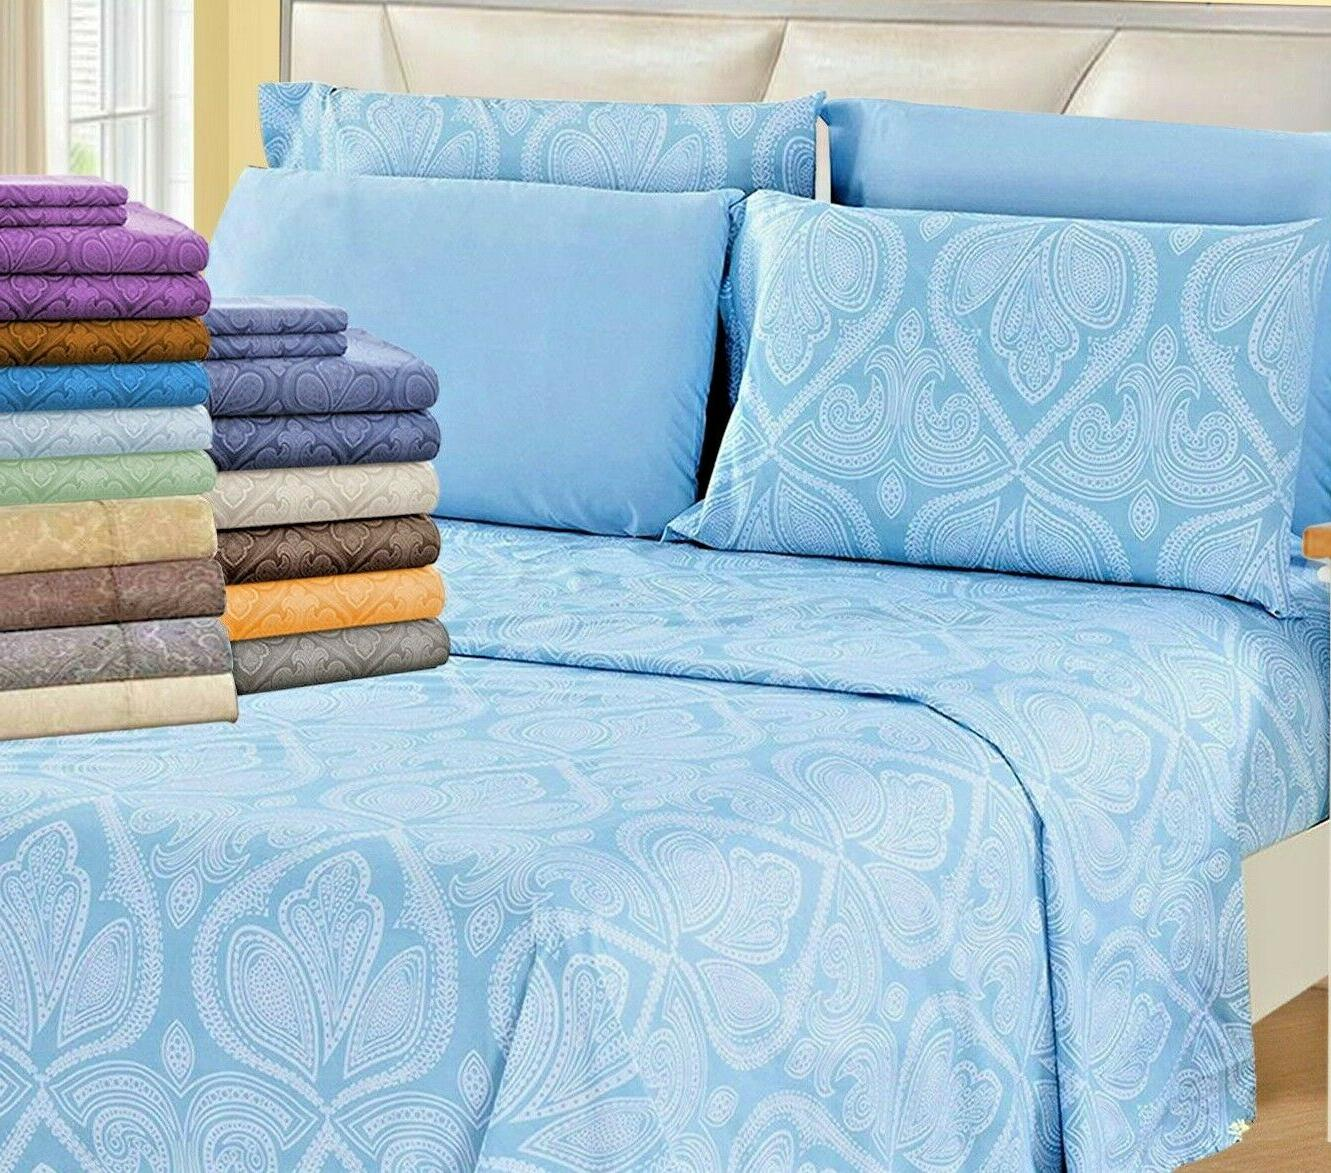 deep pocket bed sheets 6 piece set